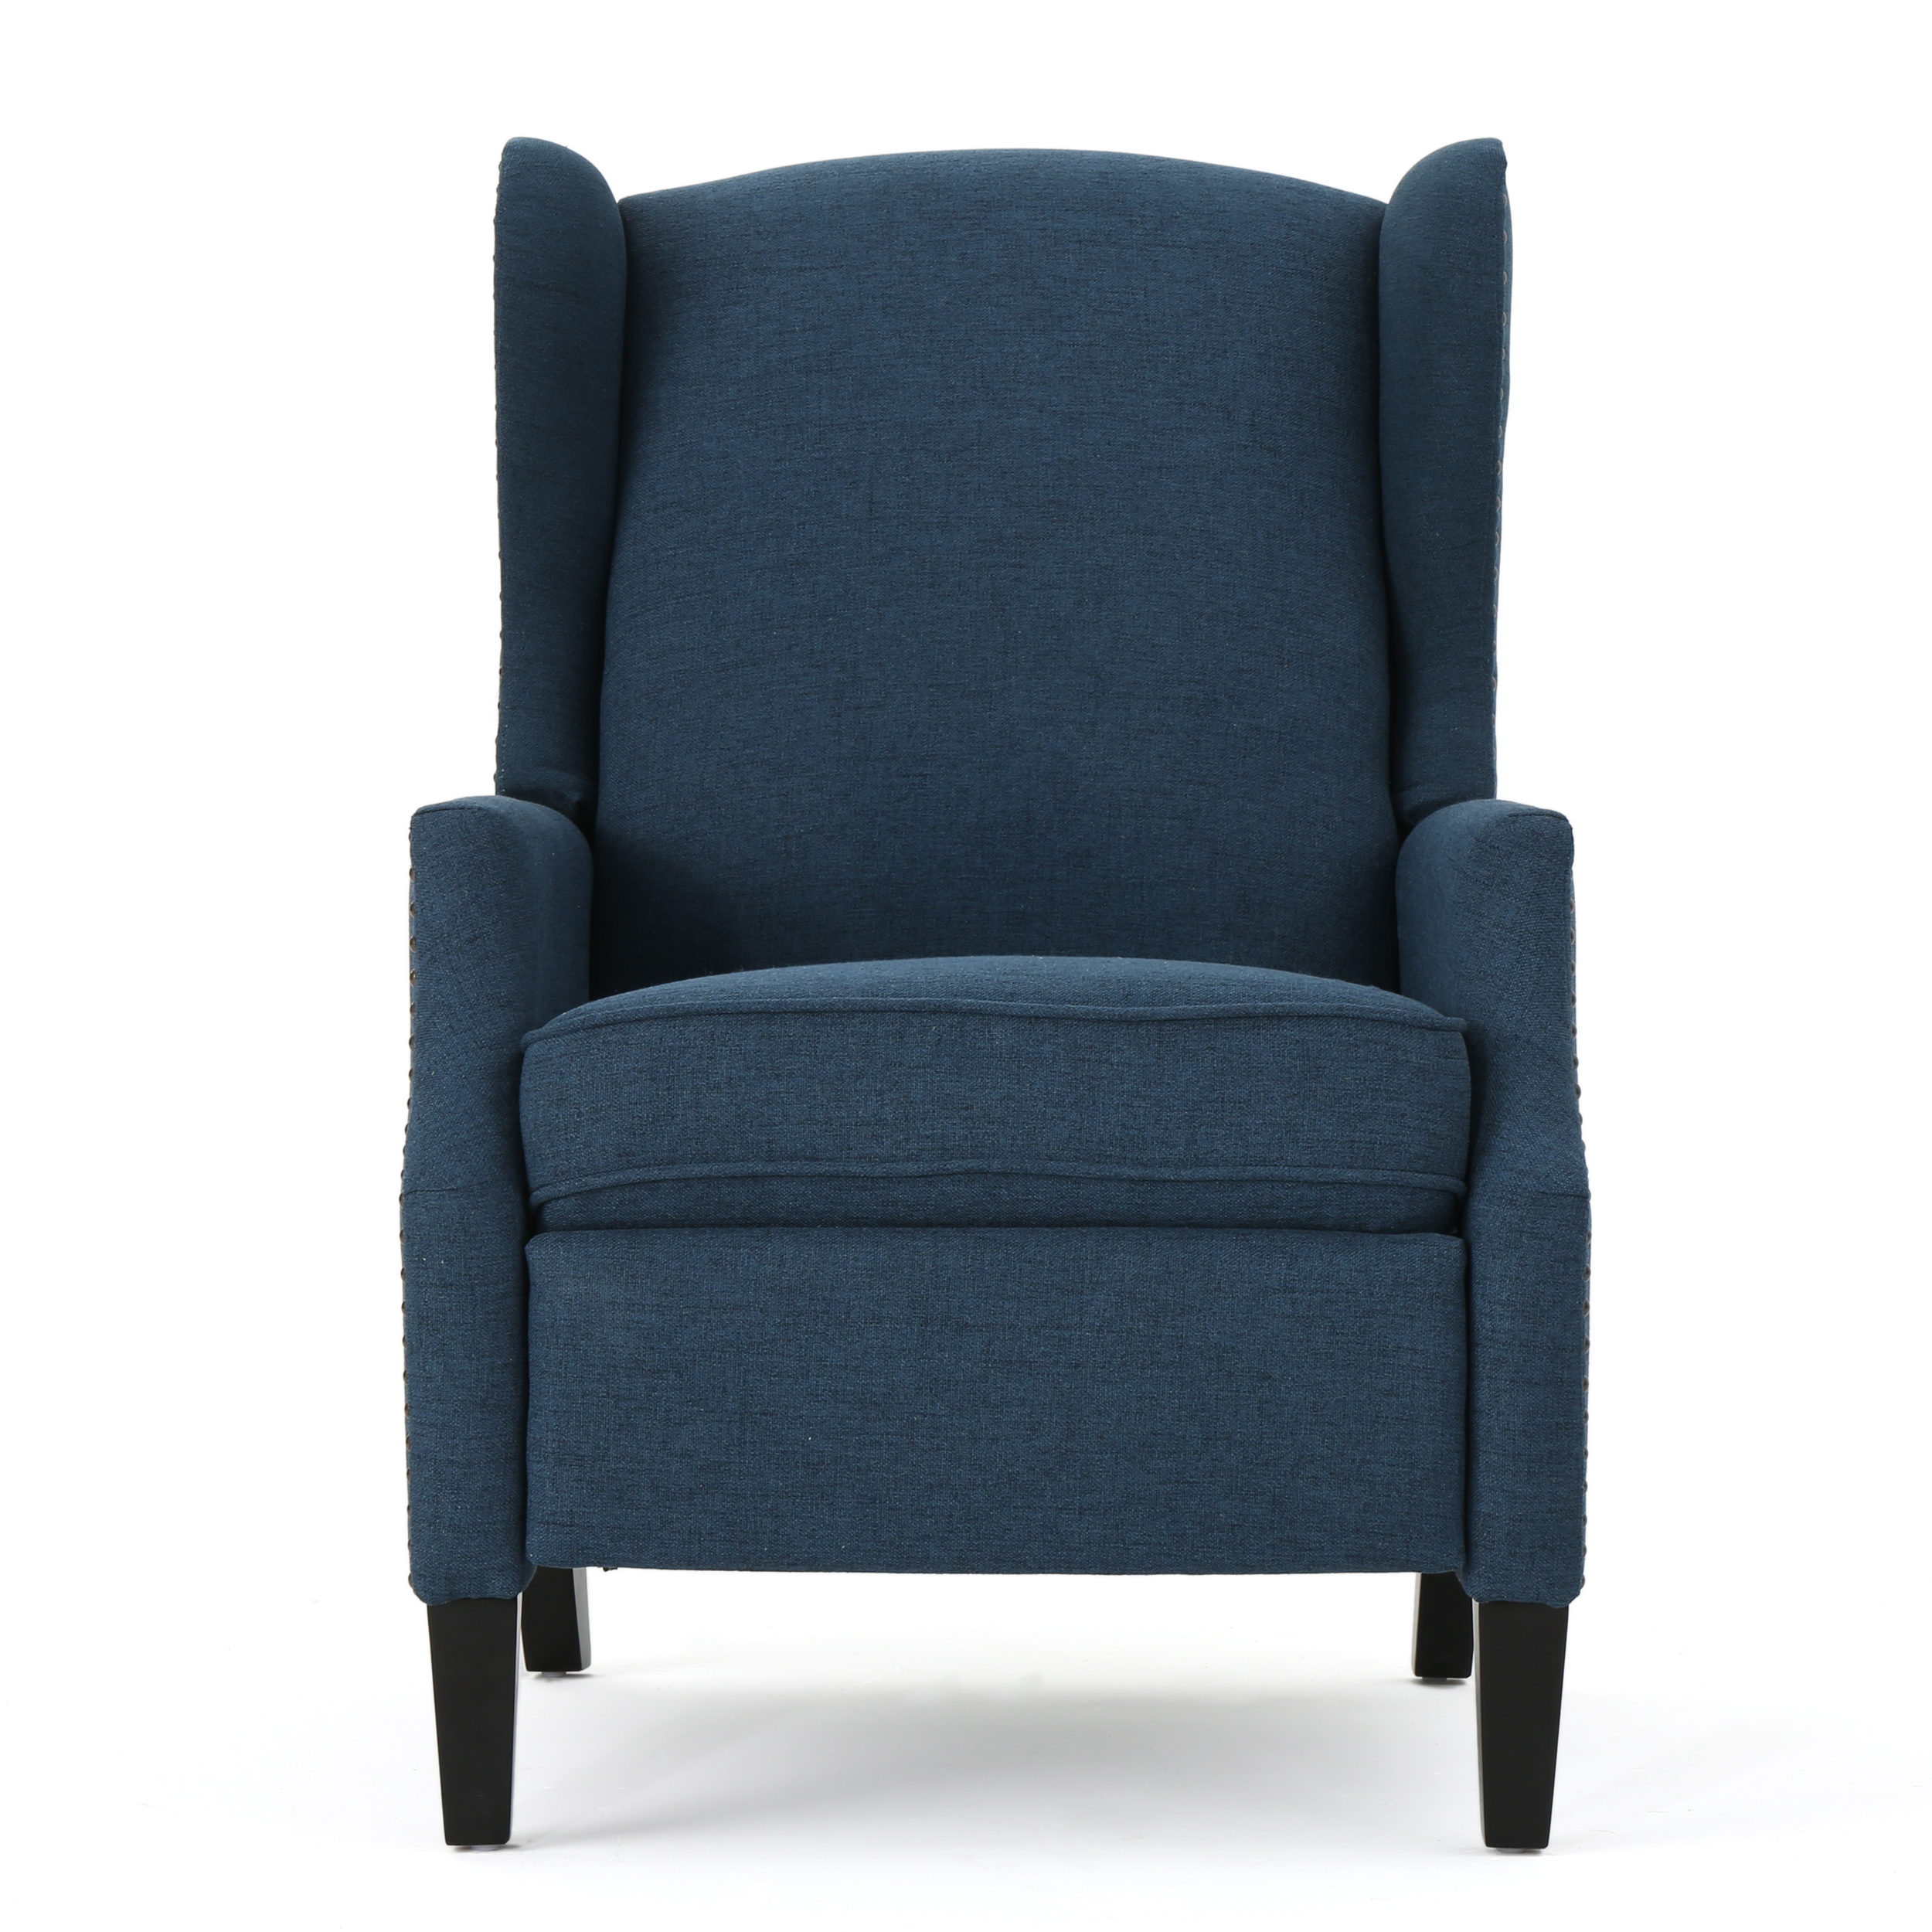 Weyland Wingback Fabric Recliner, Navy Blue